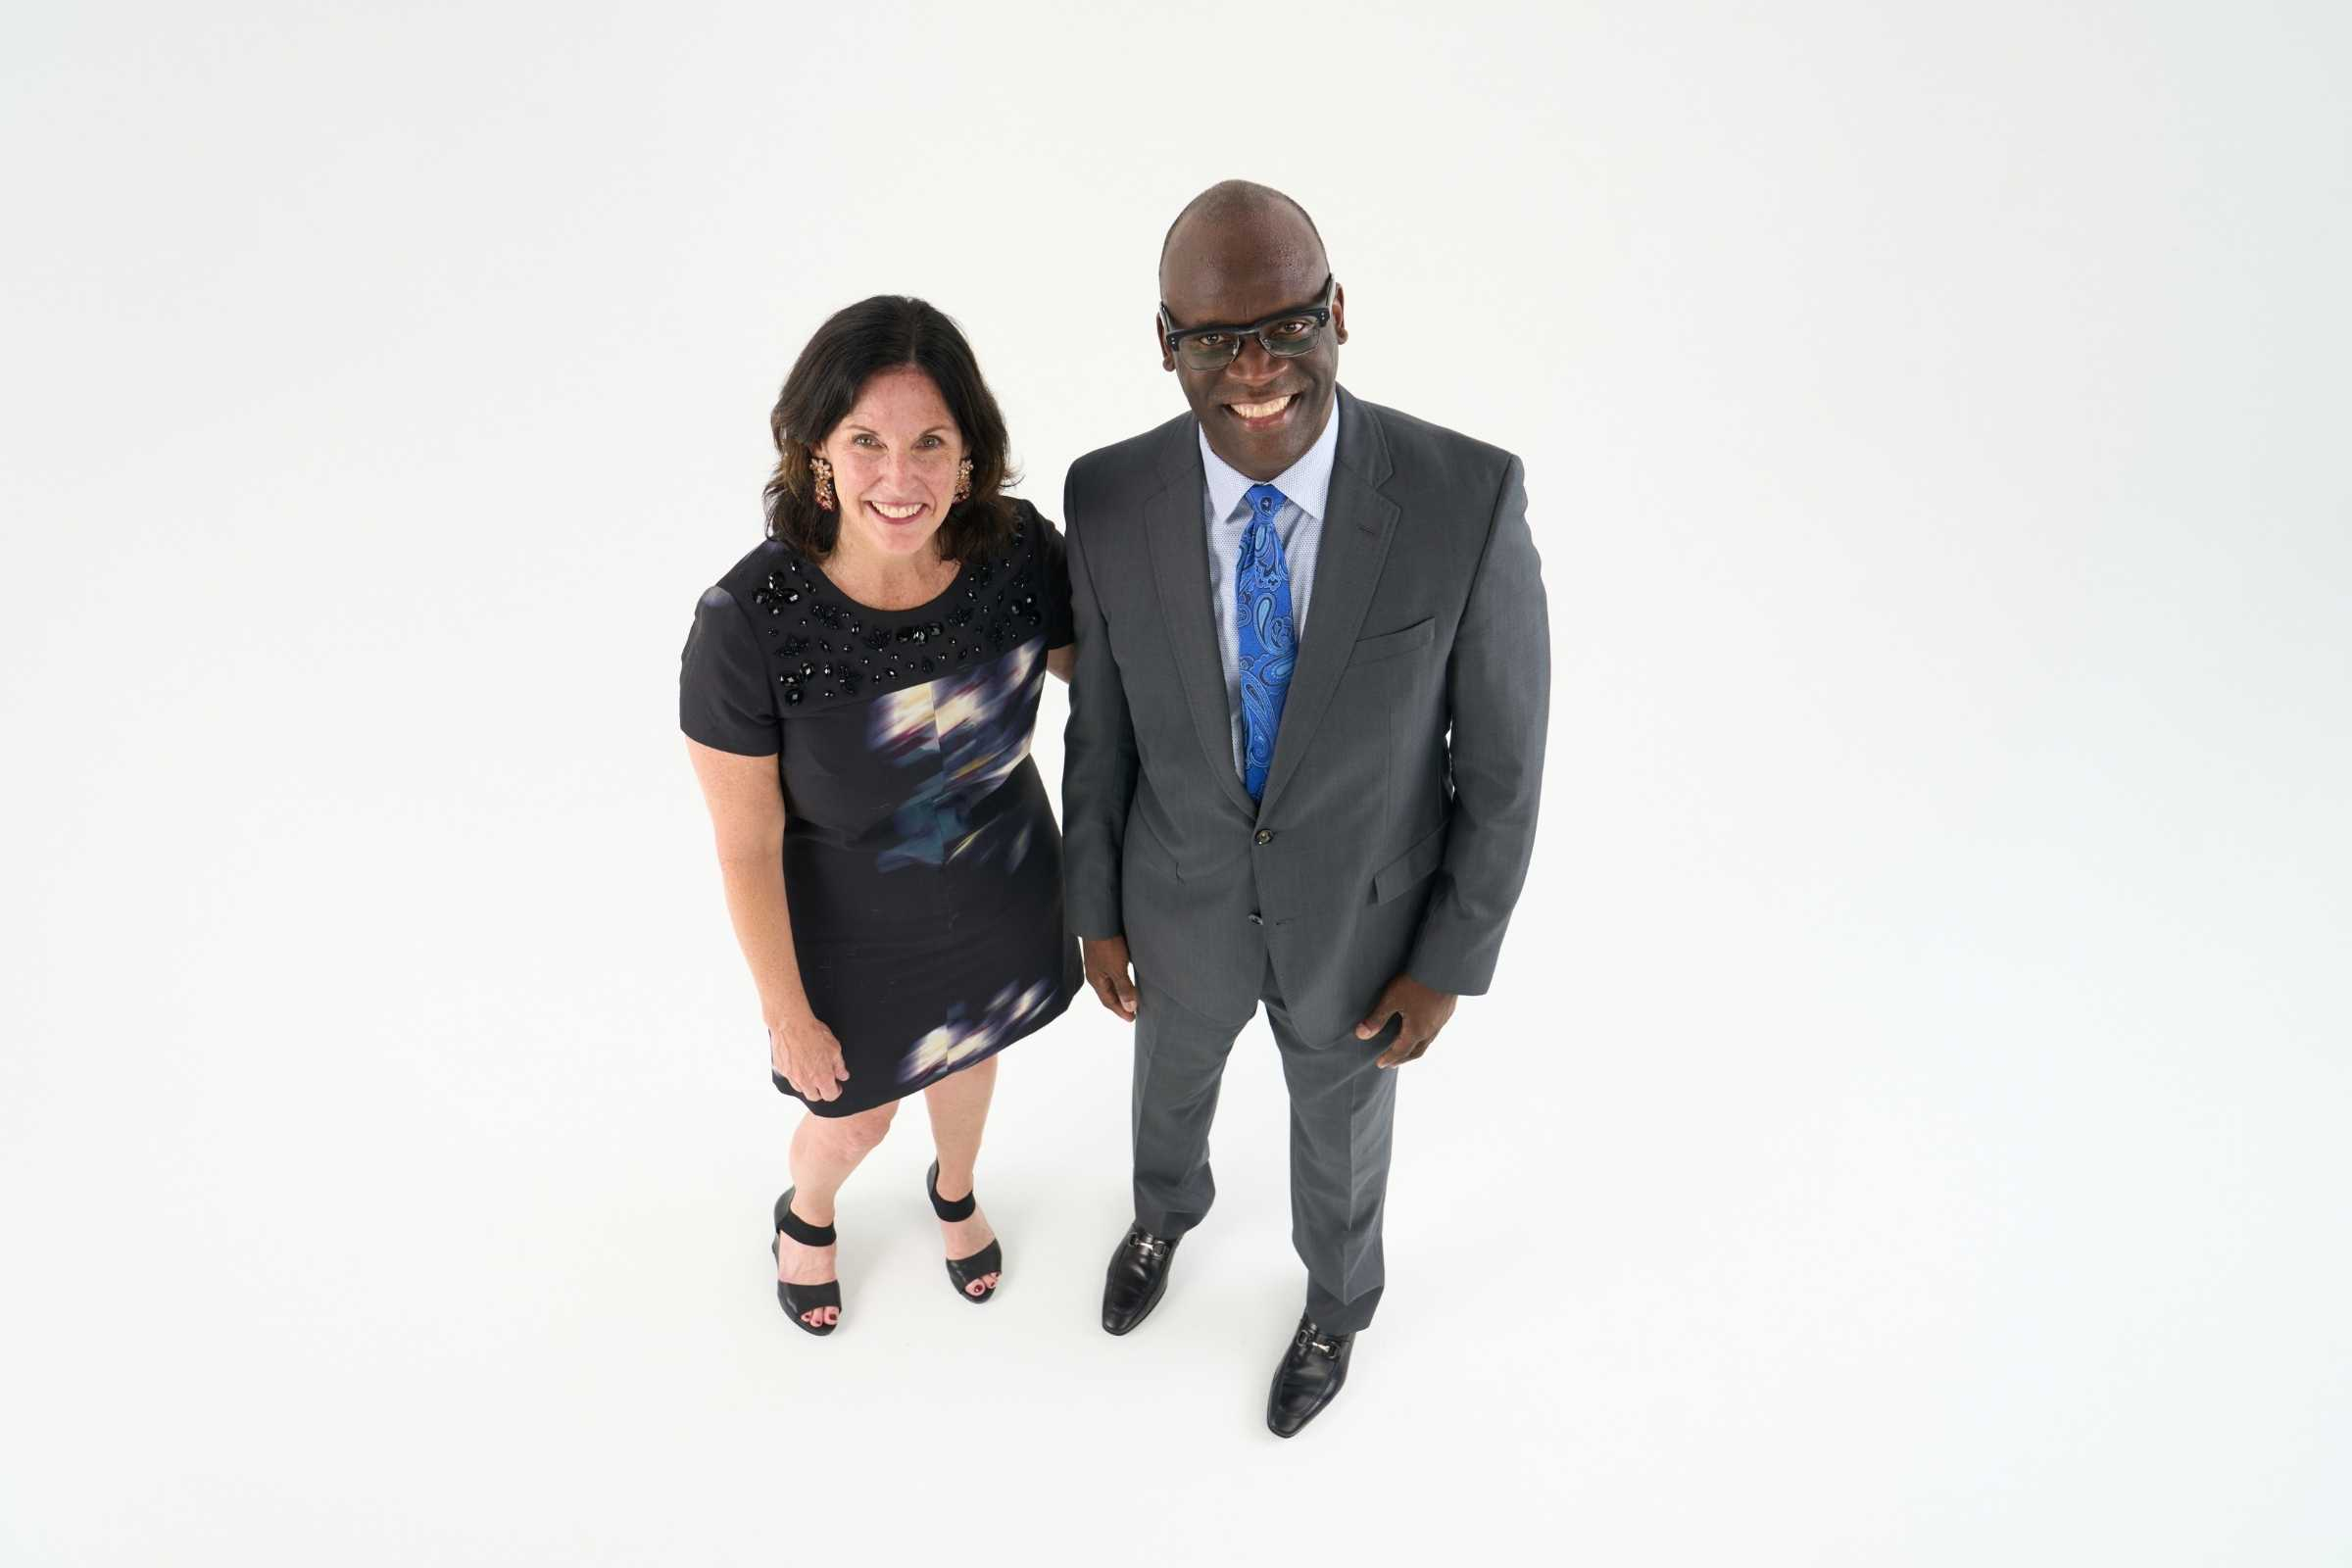 2022 St. Louis Arts Awards Co-Chairs Margaret McDonald and Jeffrey Carter, M.D. stand and look up at the camera.